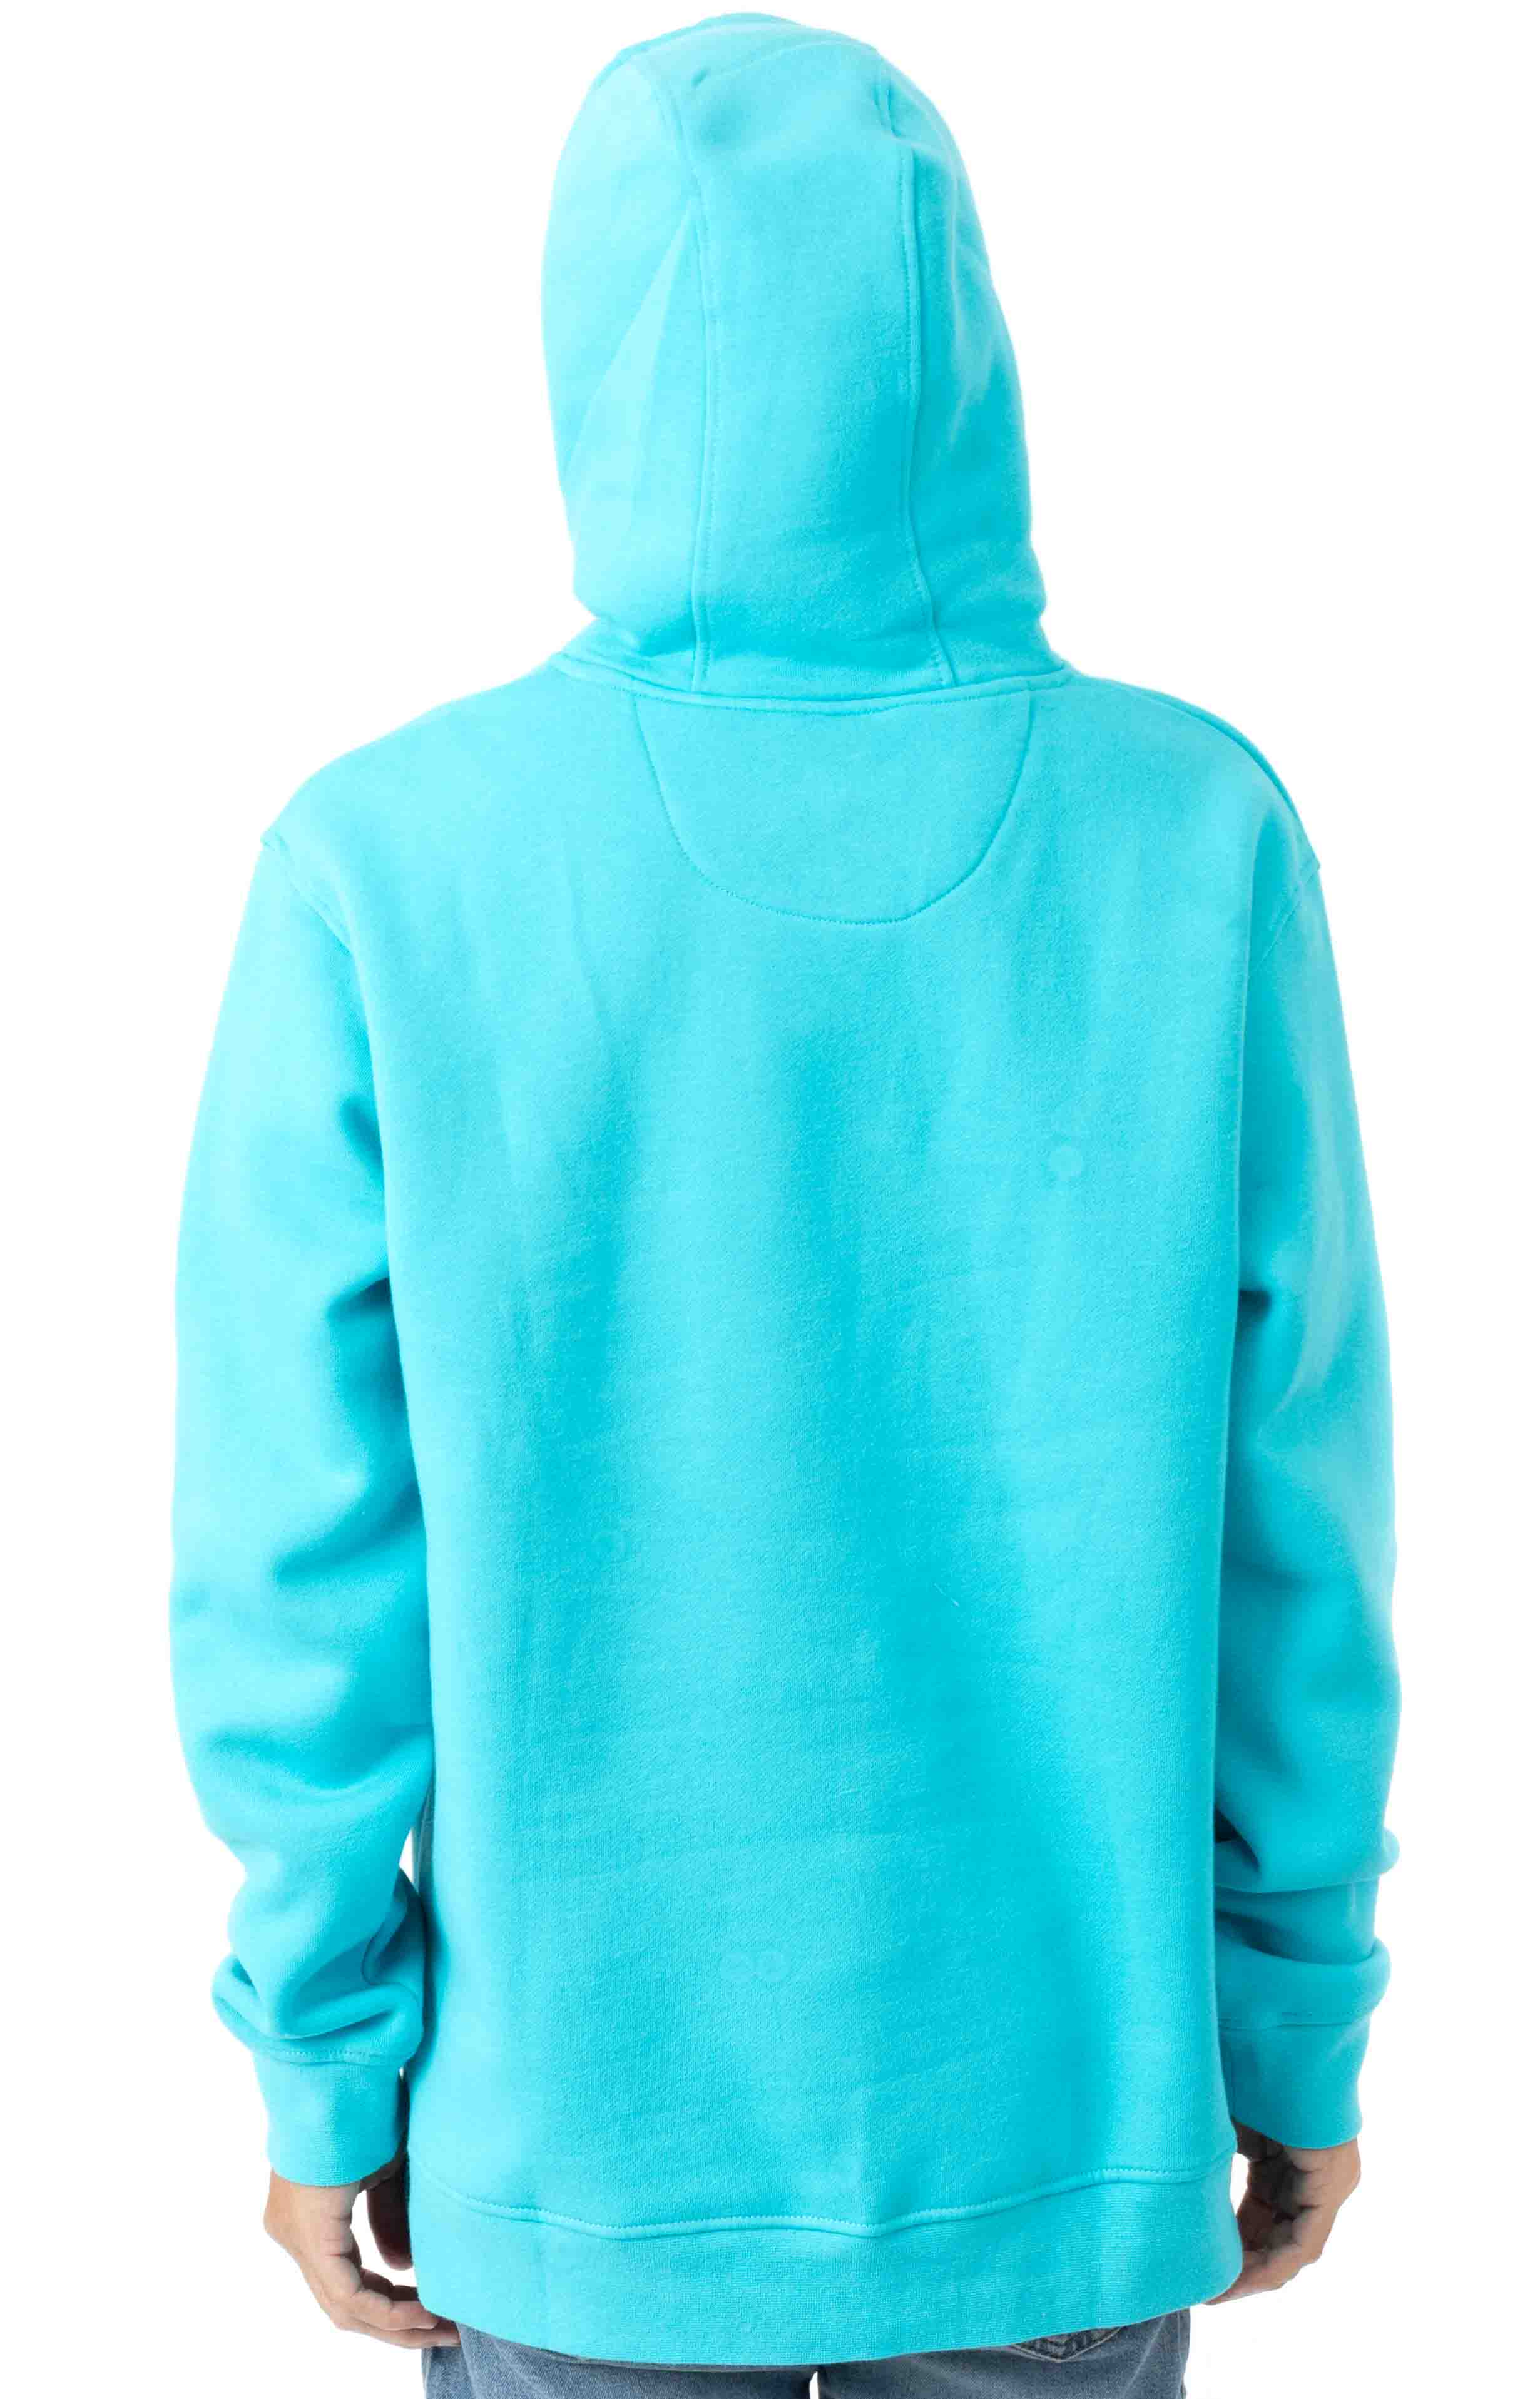 Pigeon Logo Pullover Hoodie - Electric Blue  3